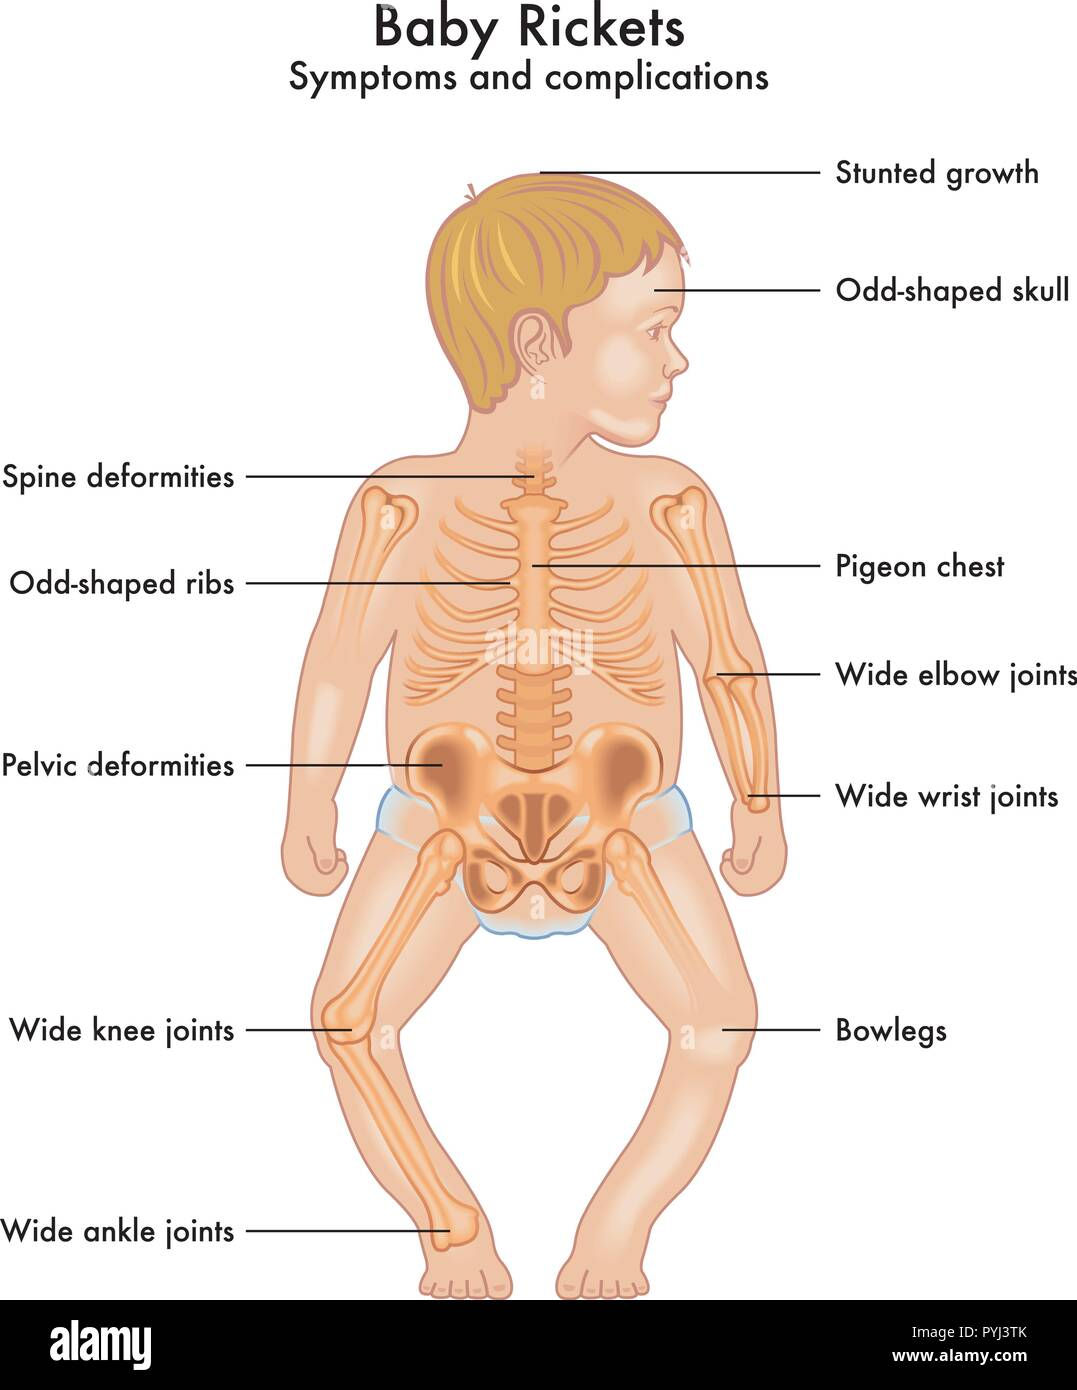 A vector illustration of the anatomy of a child with rickets symptoms - Stock Image